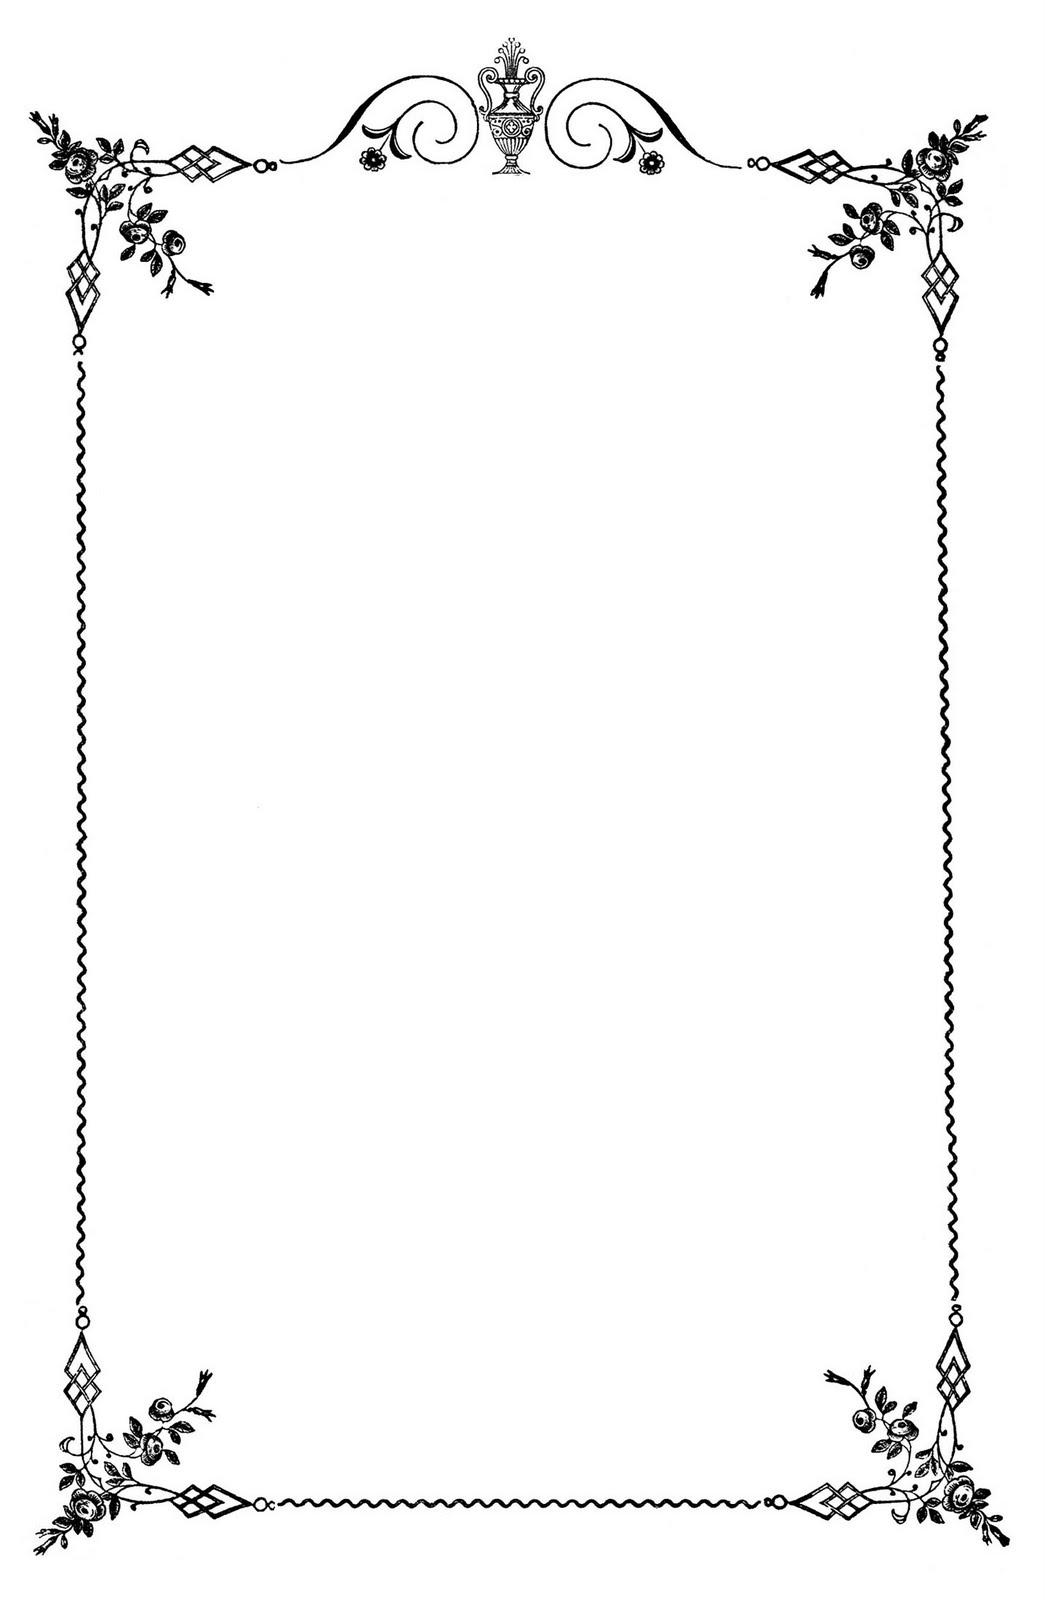 Clipart frames and borders wedding - Cli-Clipart frames and borders wedding - ClipartFest-19